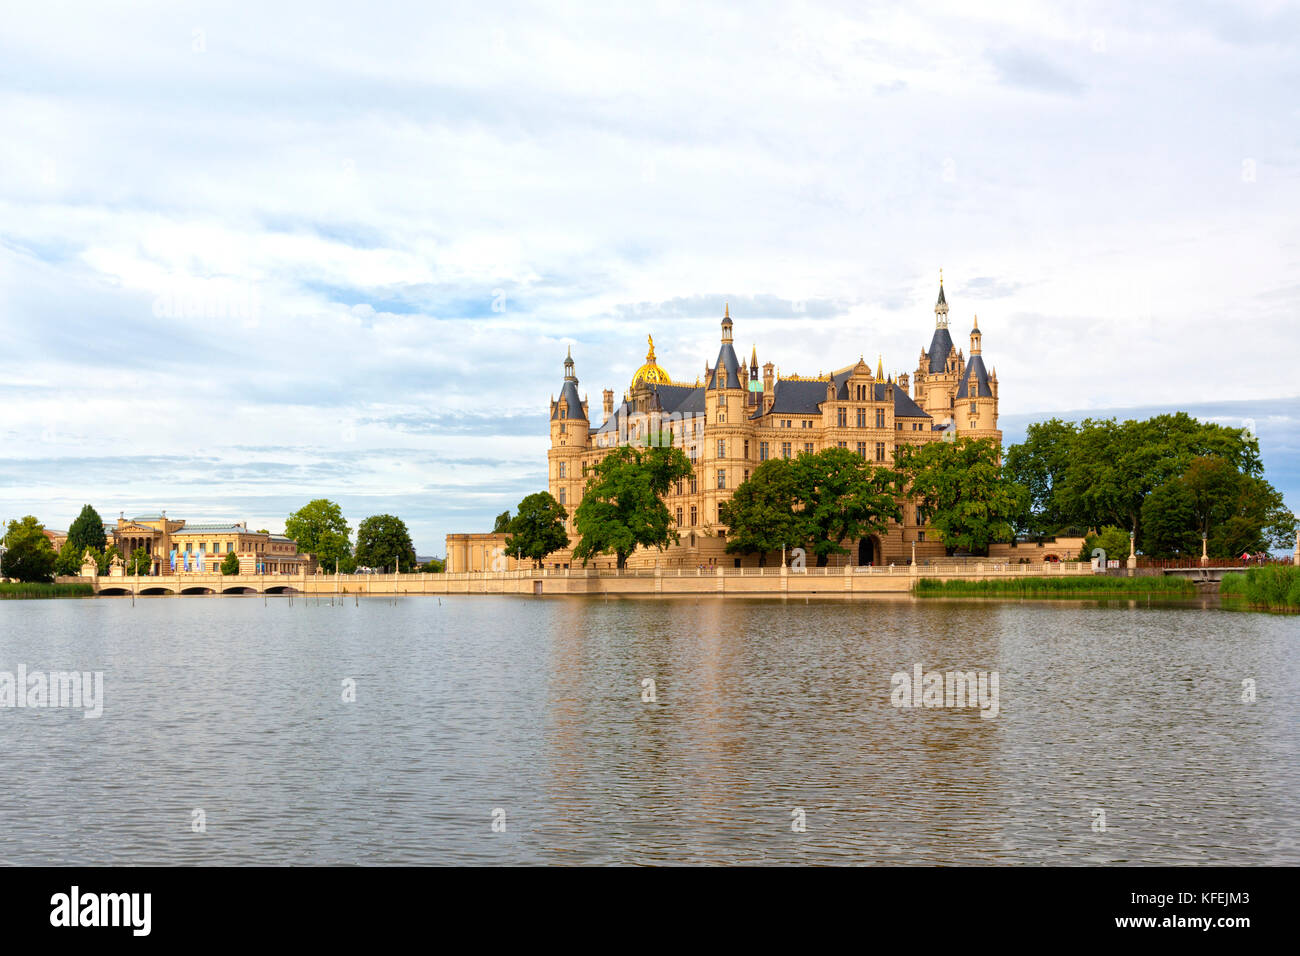 Castle at Schwerin, seat of the parliament of Mecklenburg-West Pomerania - Stock Image